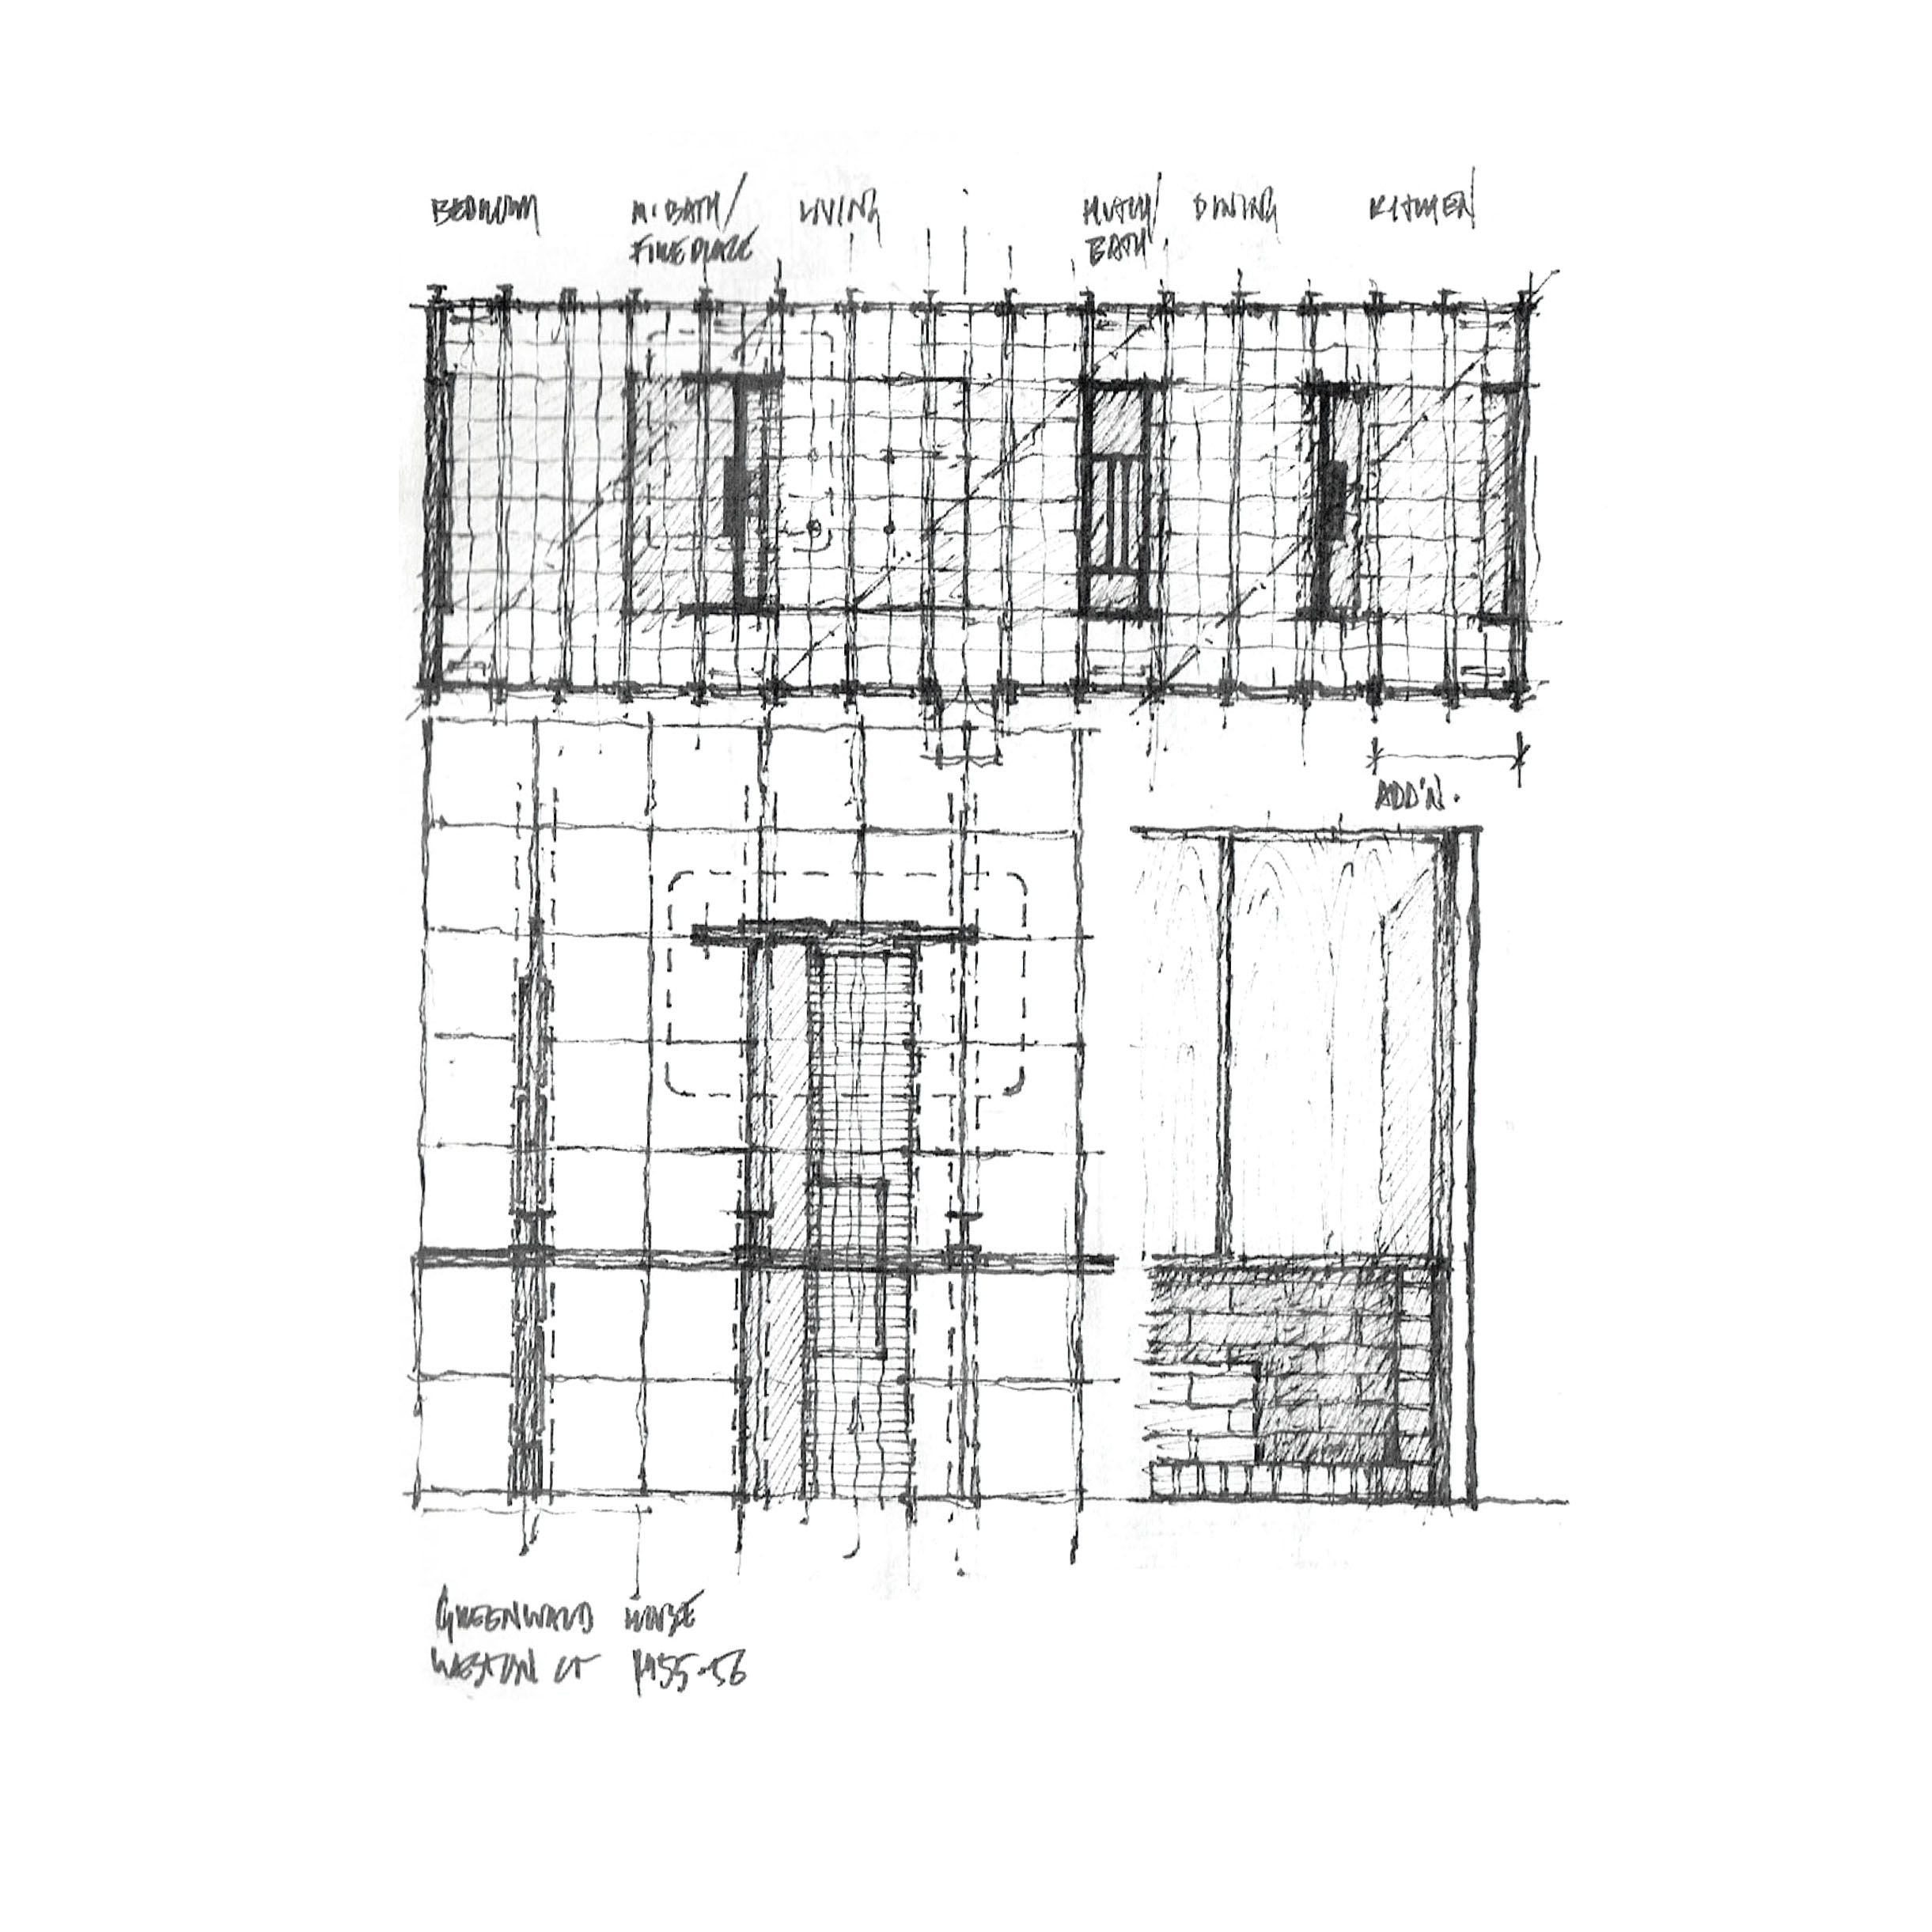 While working in Chicago, I became painfully aware of how little I actually understood the mature work of Mies van der Rohe, especially with regard to his command of modules, structural regularity,…